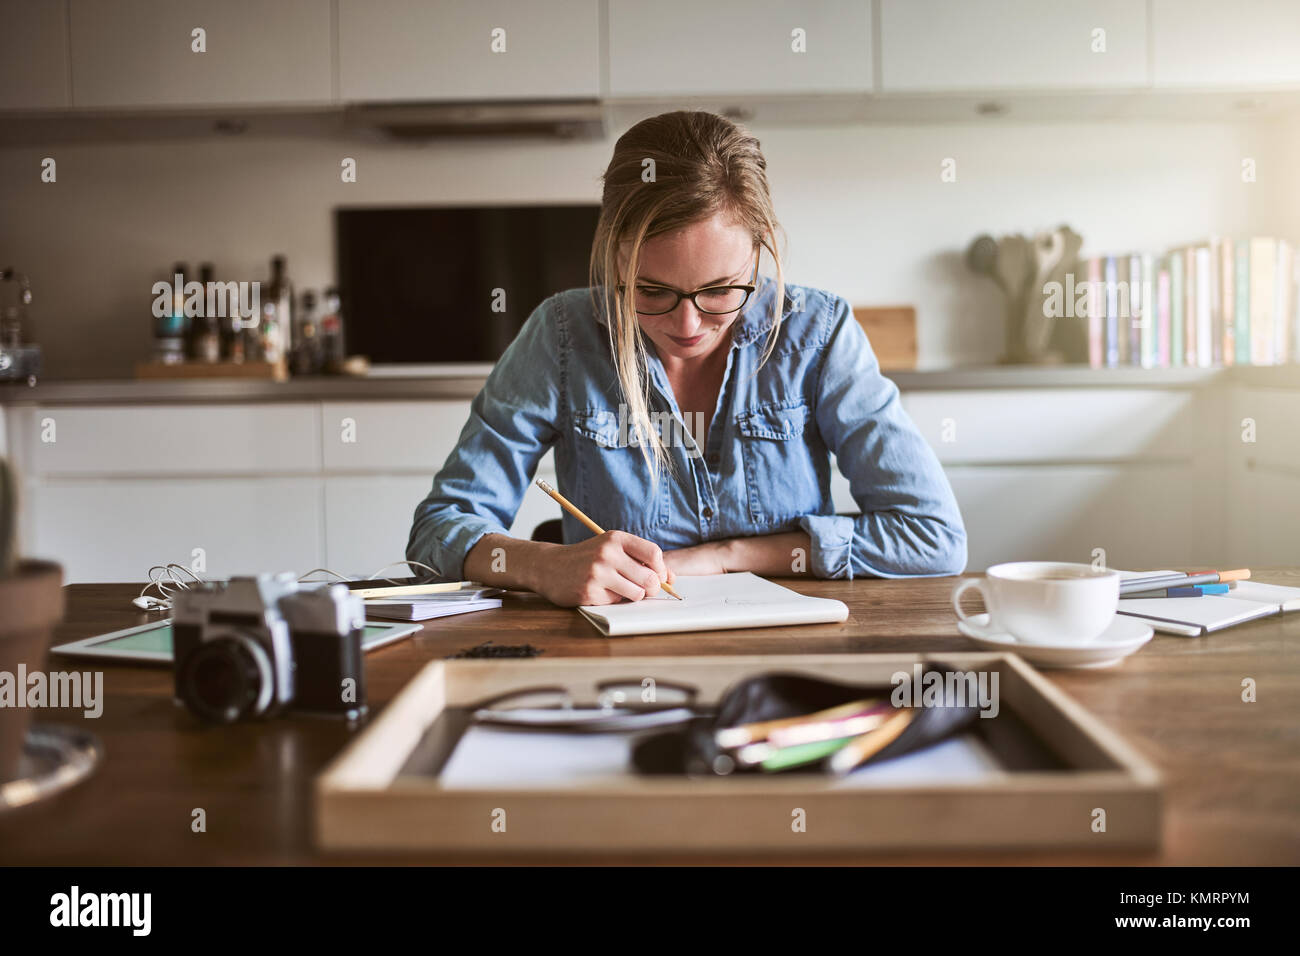 Young woman sitting at her kitchen table at home focused on sketching designs with a pencil on a notepad - Stock Image